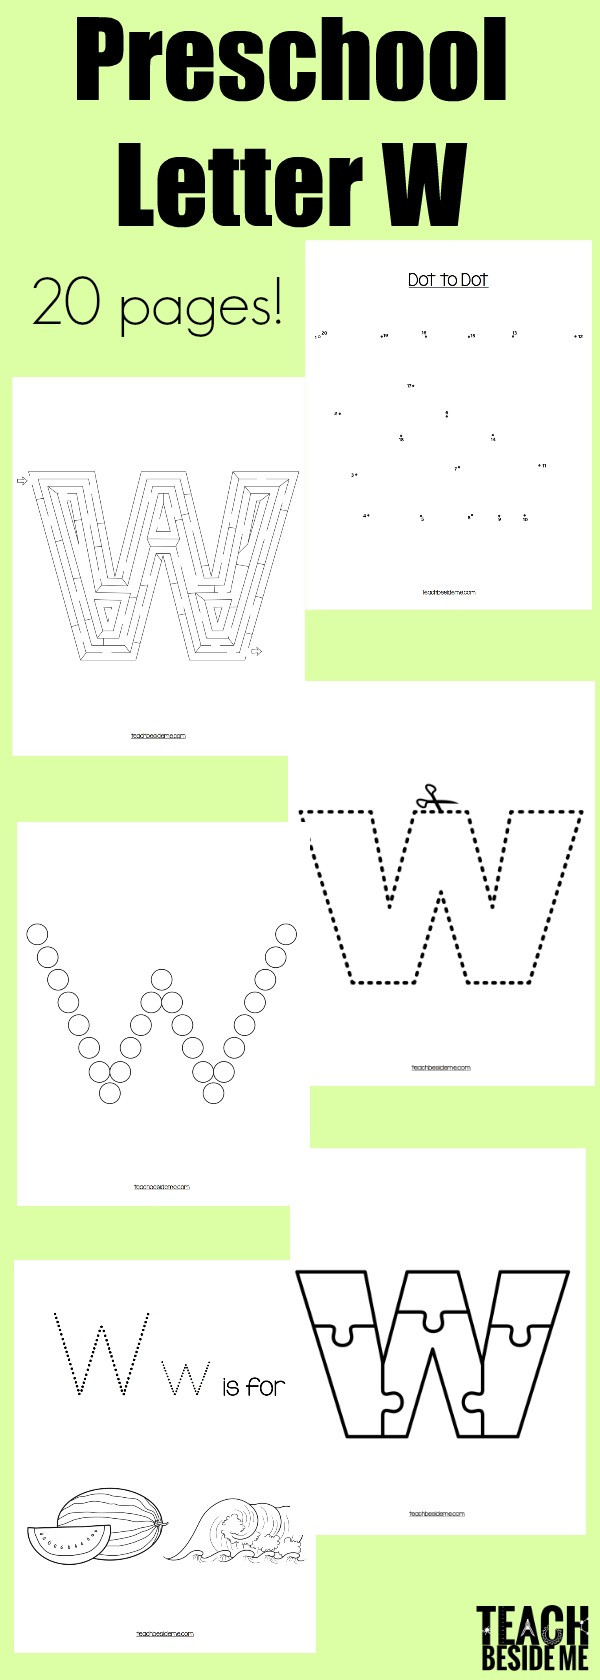 Letter W Worksheets for Preschoolers Letter Of the Week Preschool Letter W Activities – Teach